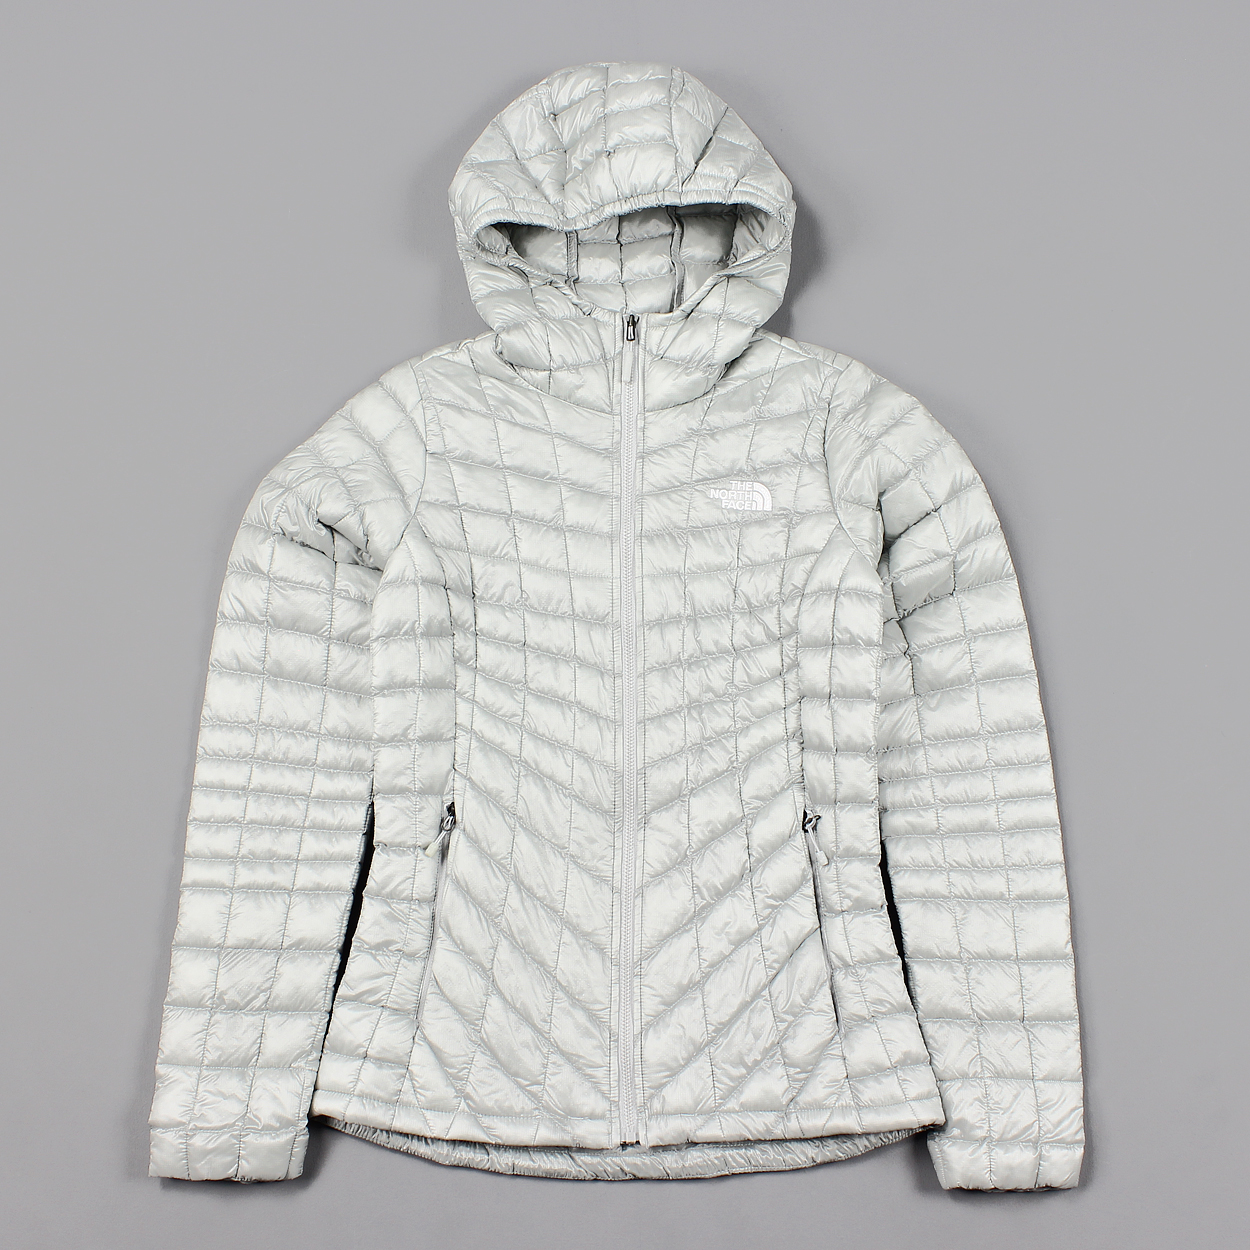 91883d41dcce The North Face Womens Thermoball Hoodie Jacket High Rise Grey £112.00